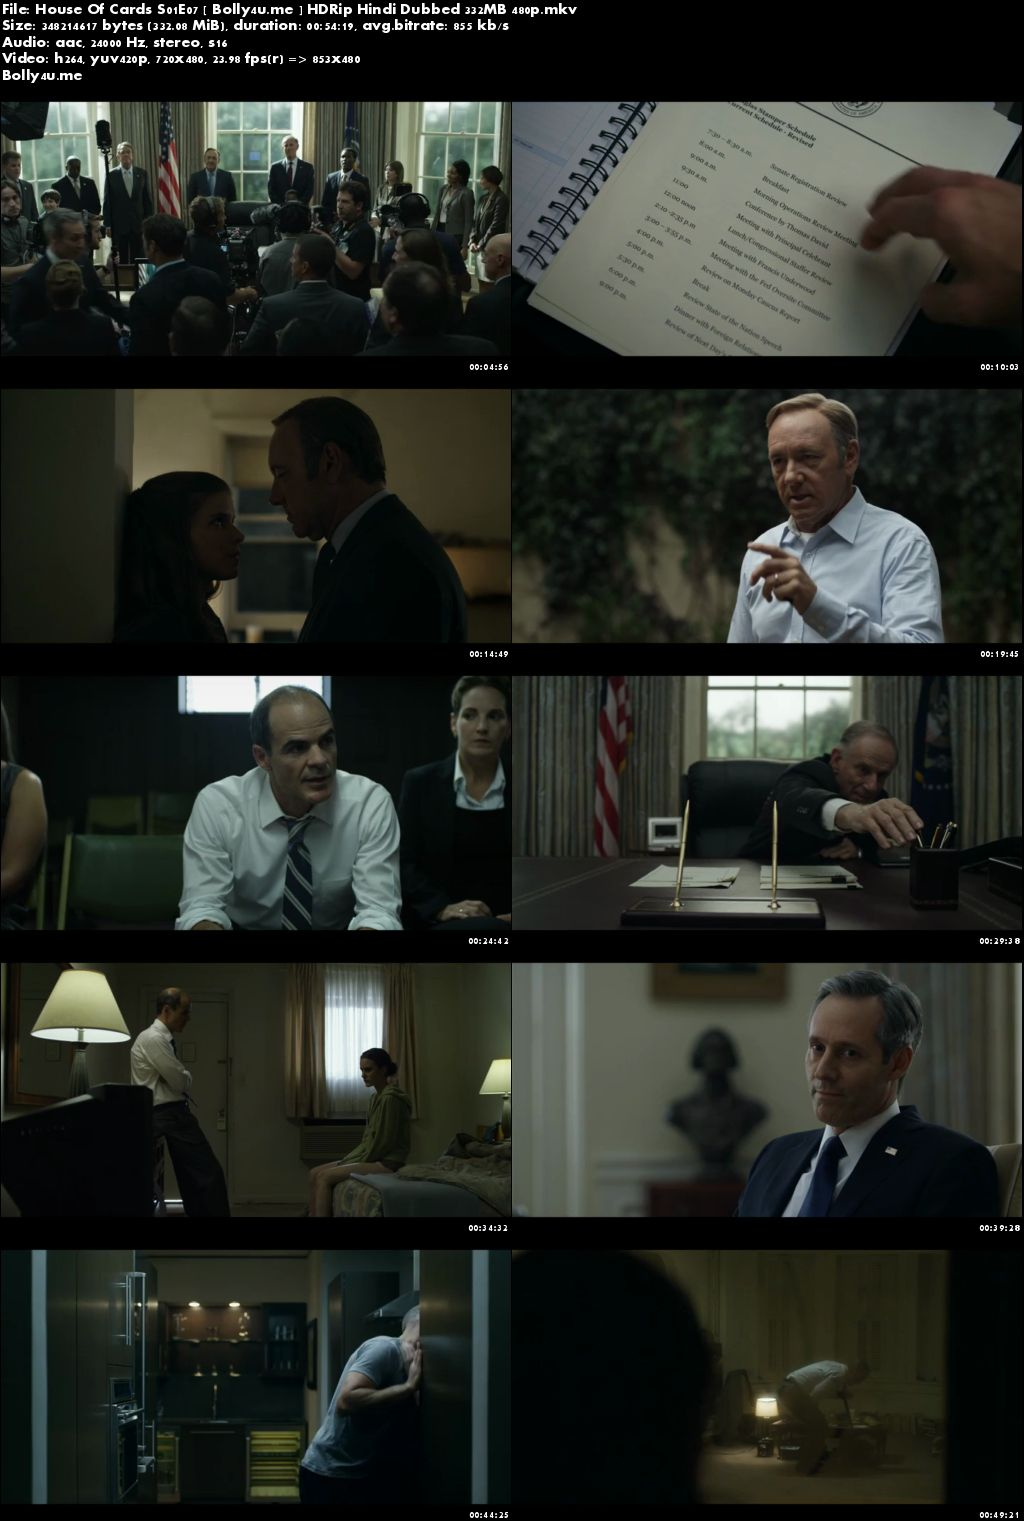 House Of Cards S01E07 HDRip 300MB Hindi Dubbed 480p Download